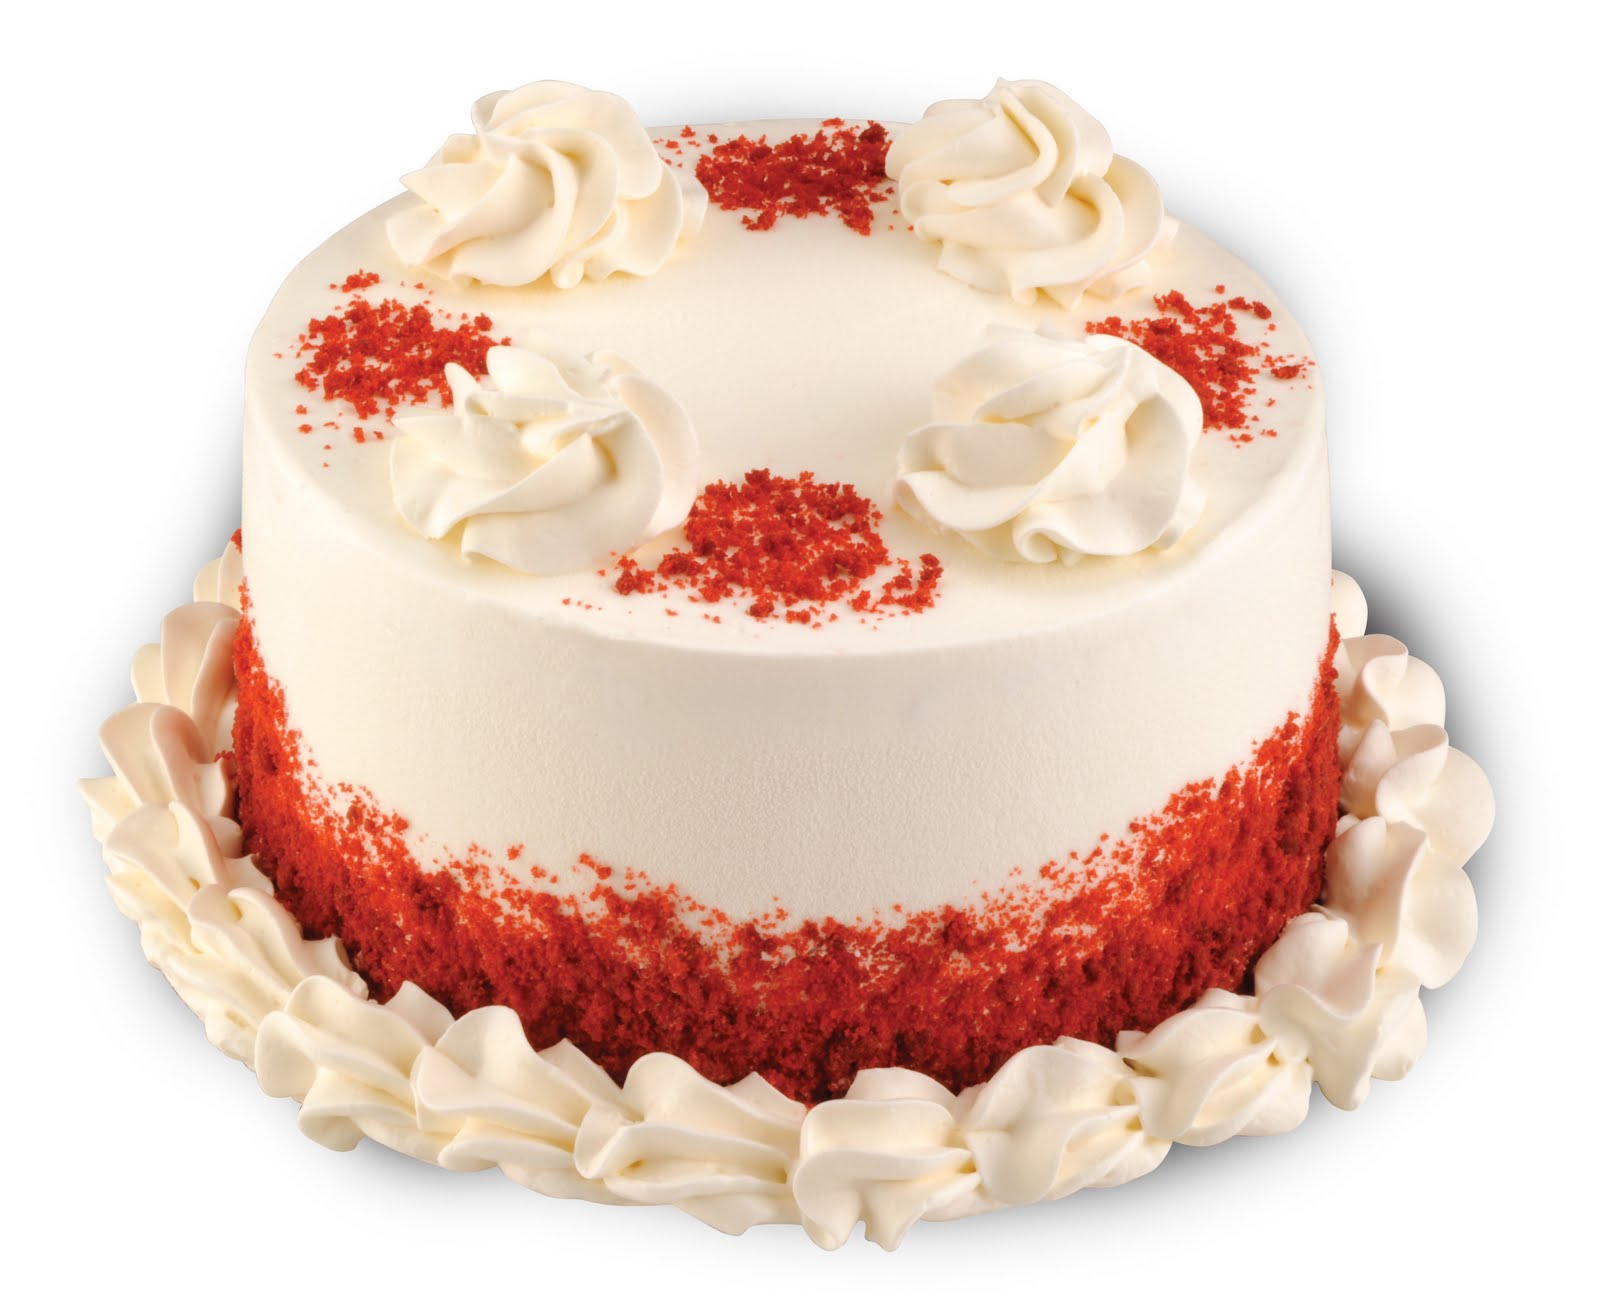 Red Velvet Cake Design Ideas : Sammi s Blog of Life: Make Baskin Robbins part of your holiday